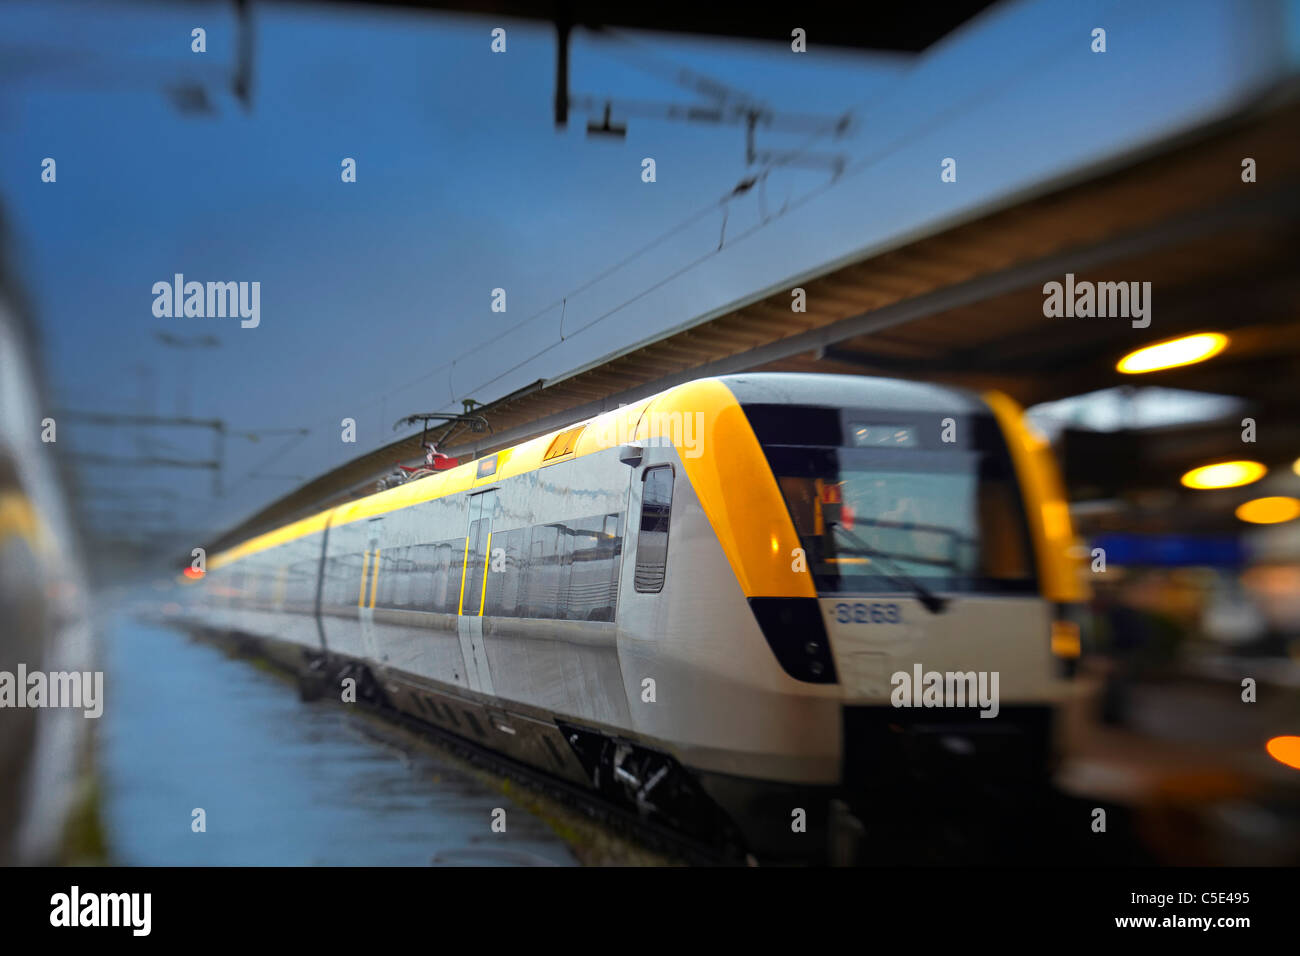 Express train arriving at the railway platform station against blue sky - Stock Image